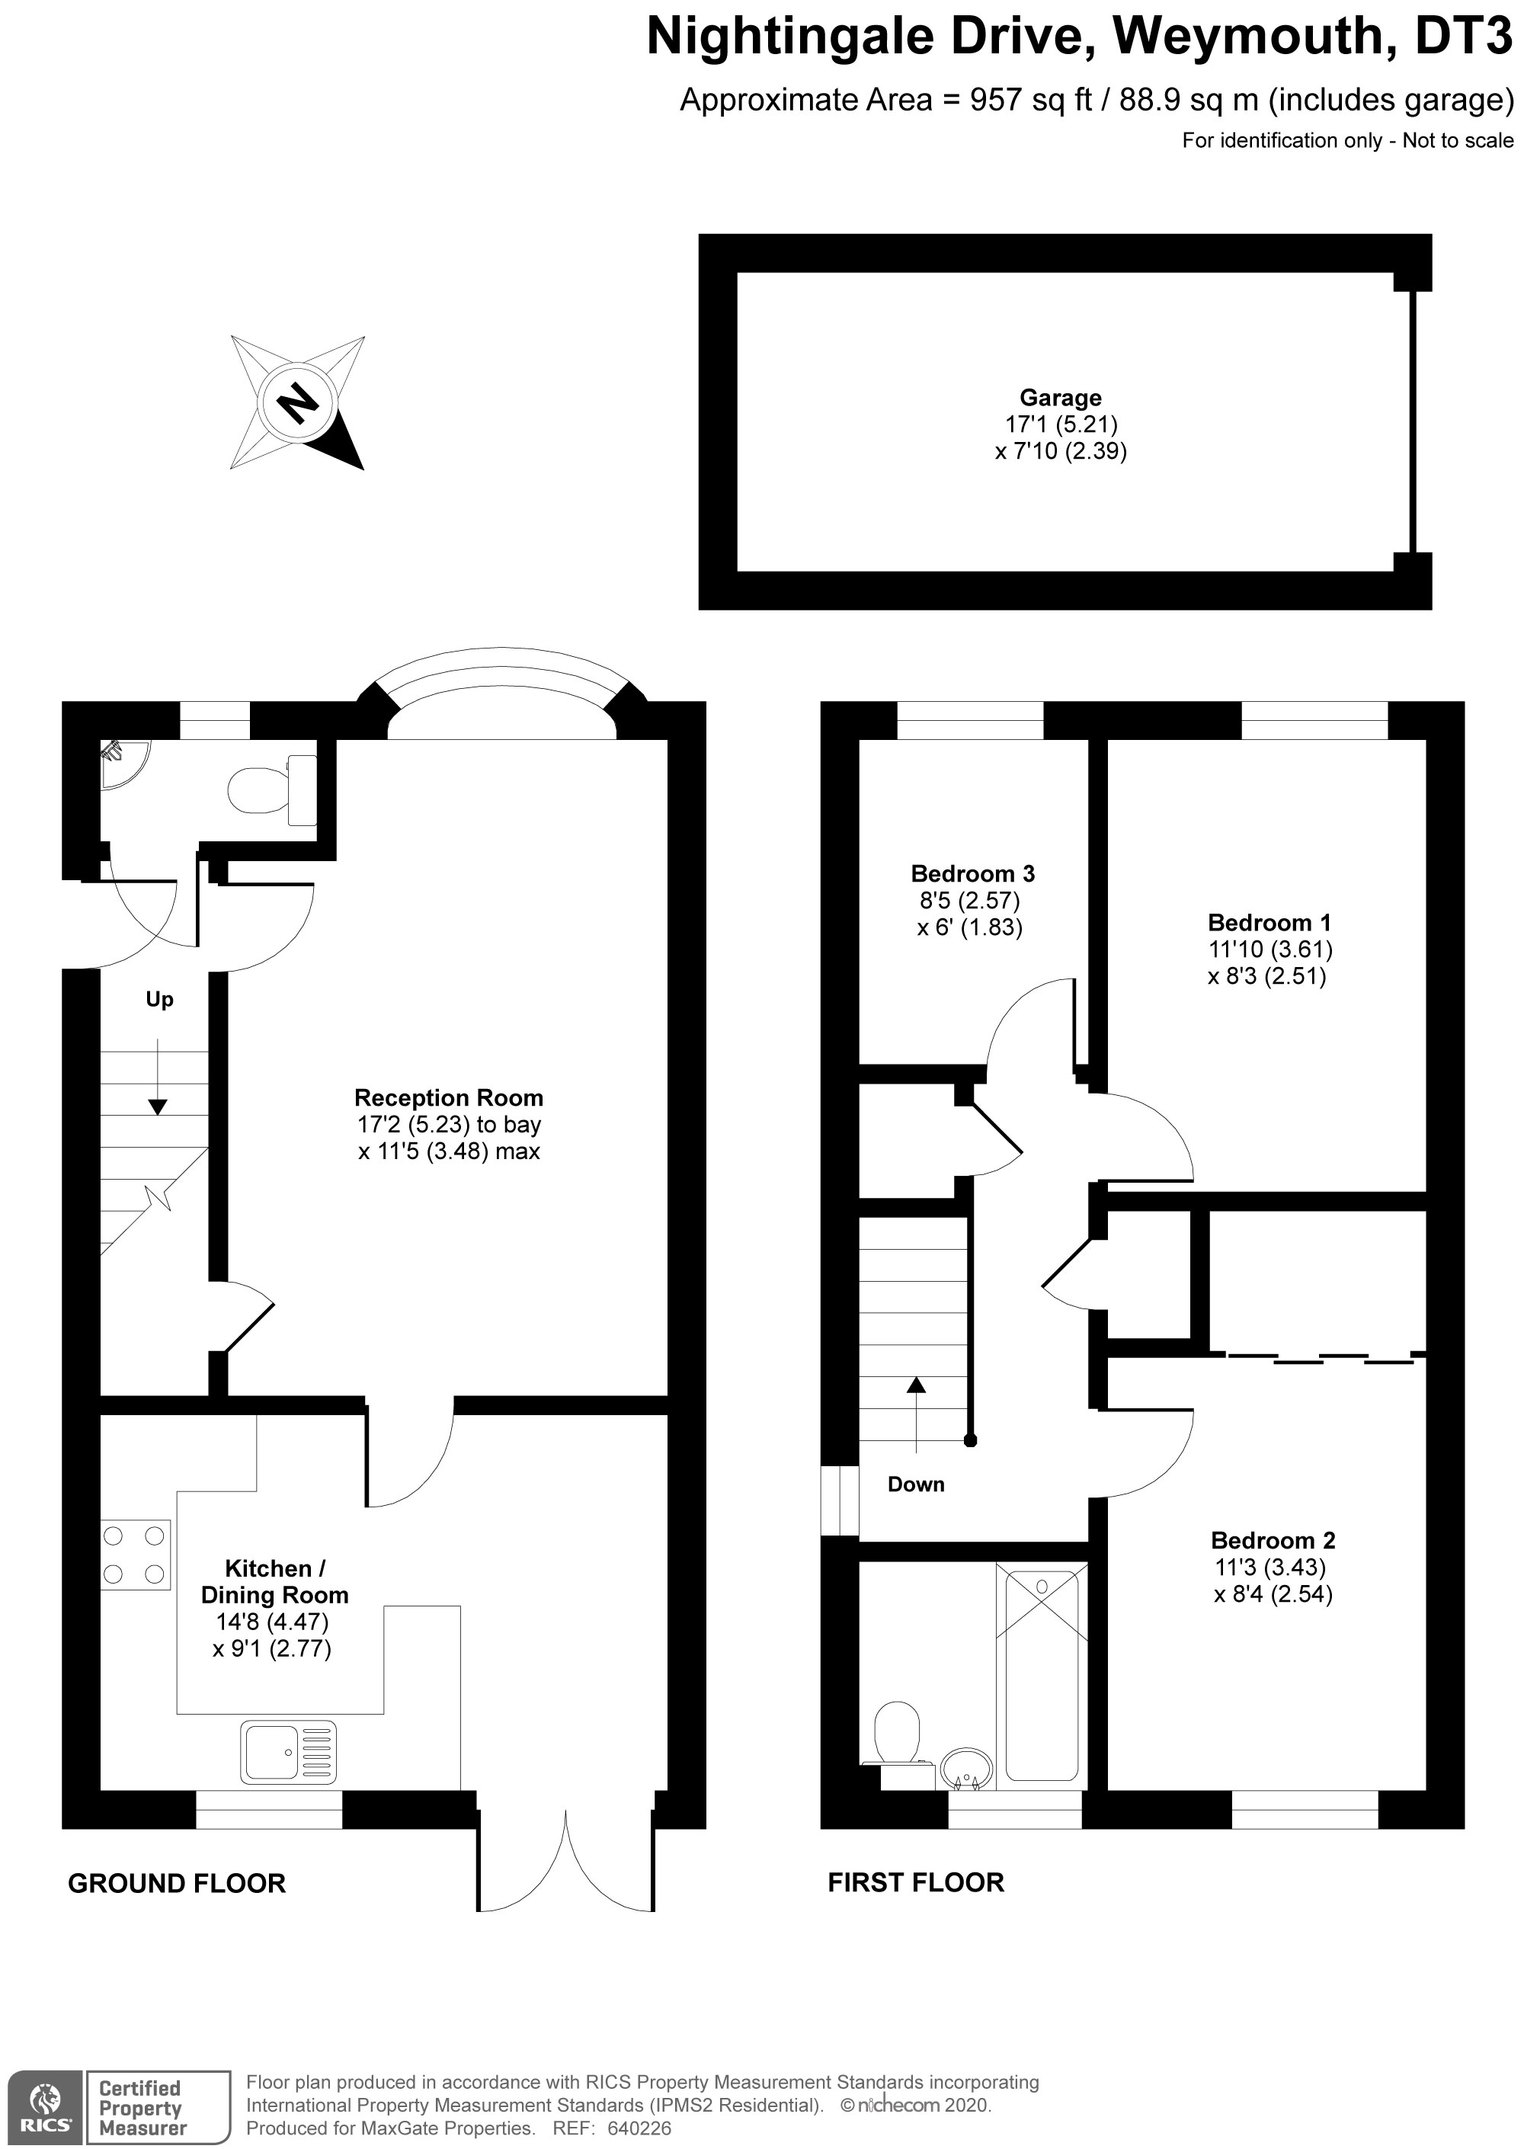 Floorplan for 24 Nightingale Drive, Weymouth